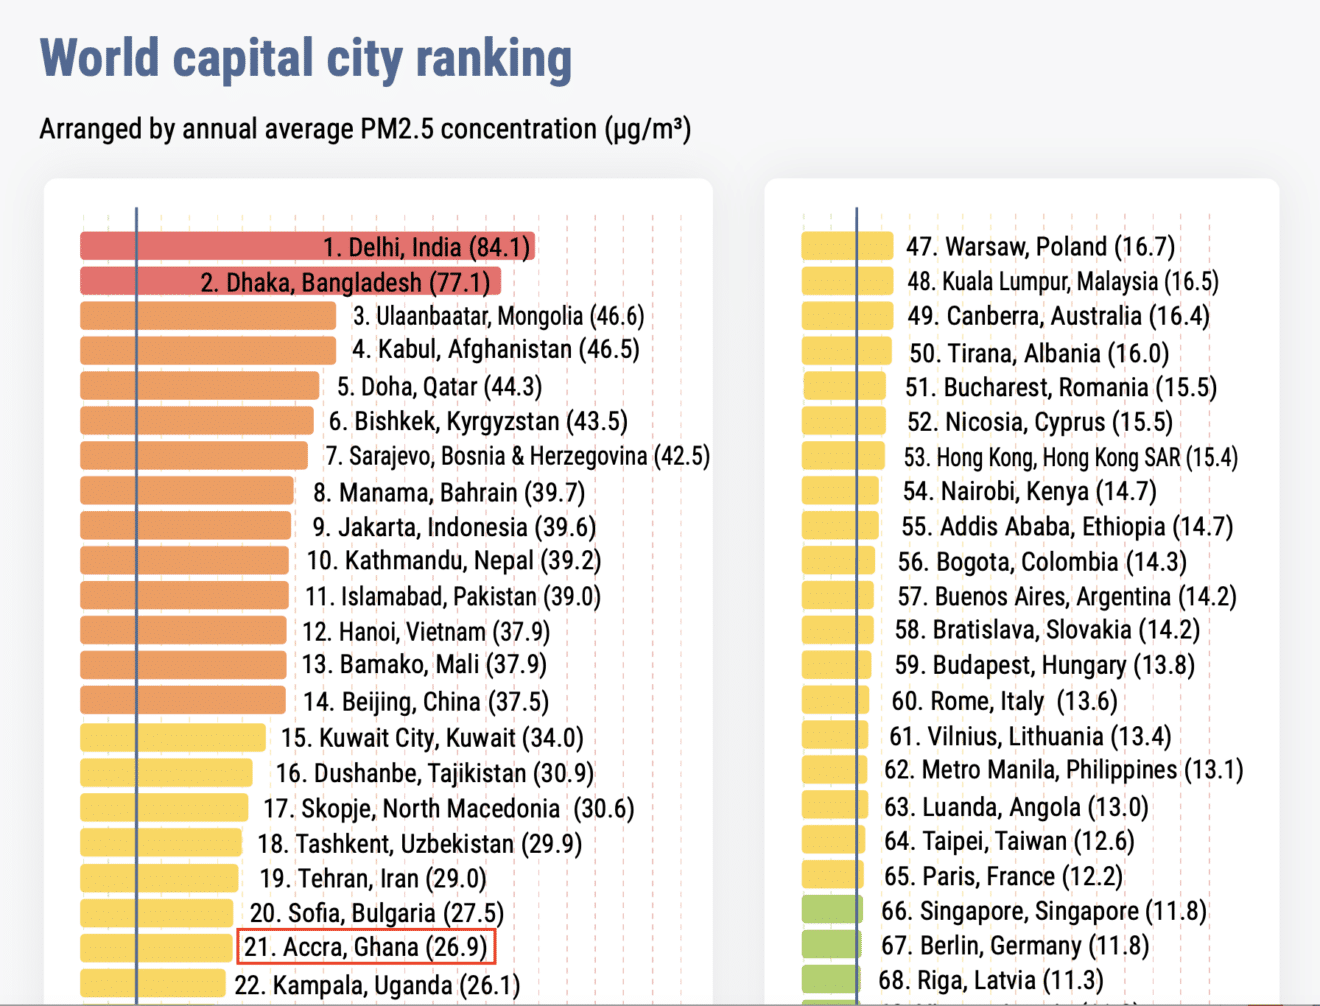 IQAir AirVisual's 2020 World Air Quality Report - The Most Polluted Regional Capital Cities in The World. Source: IQAir